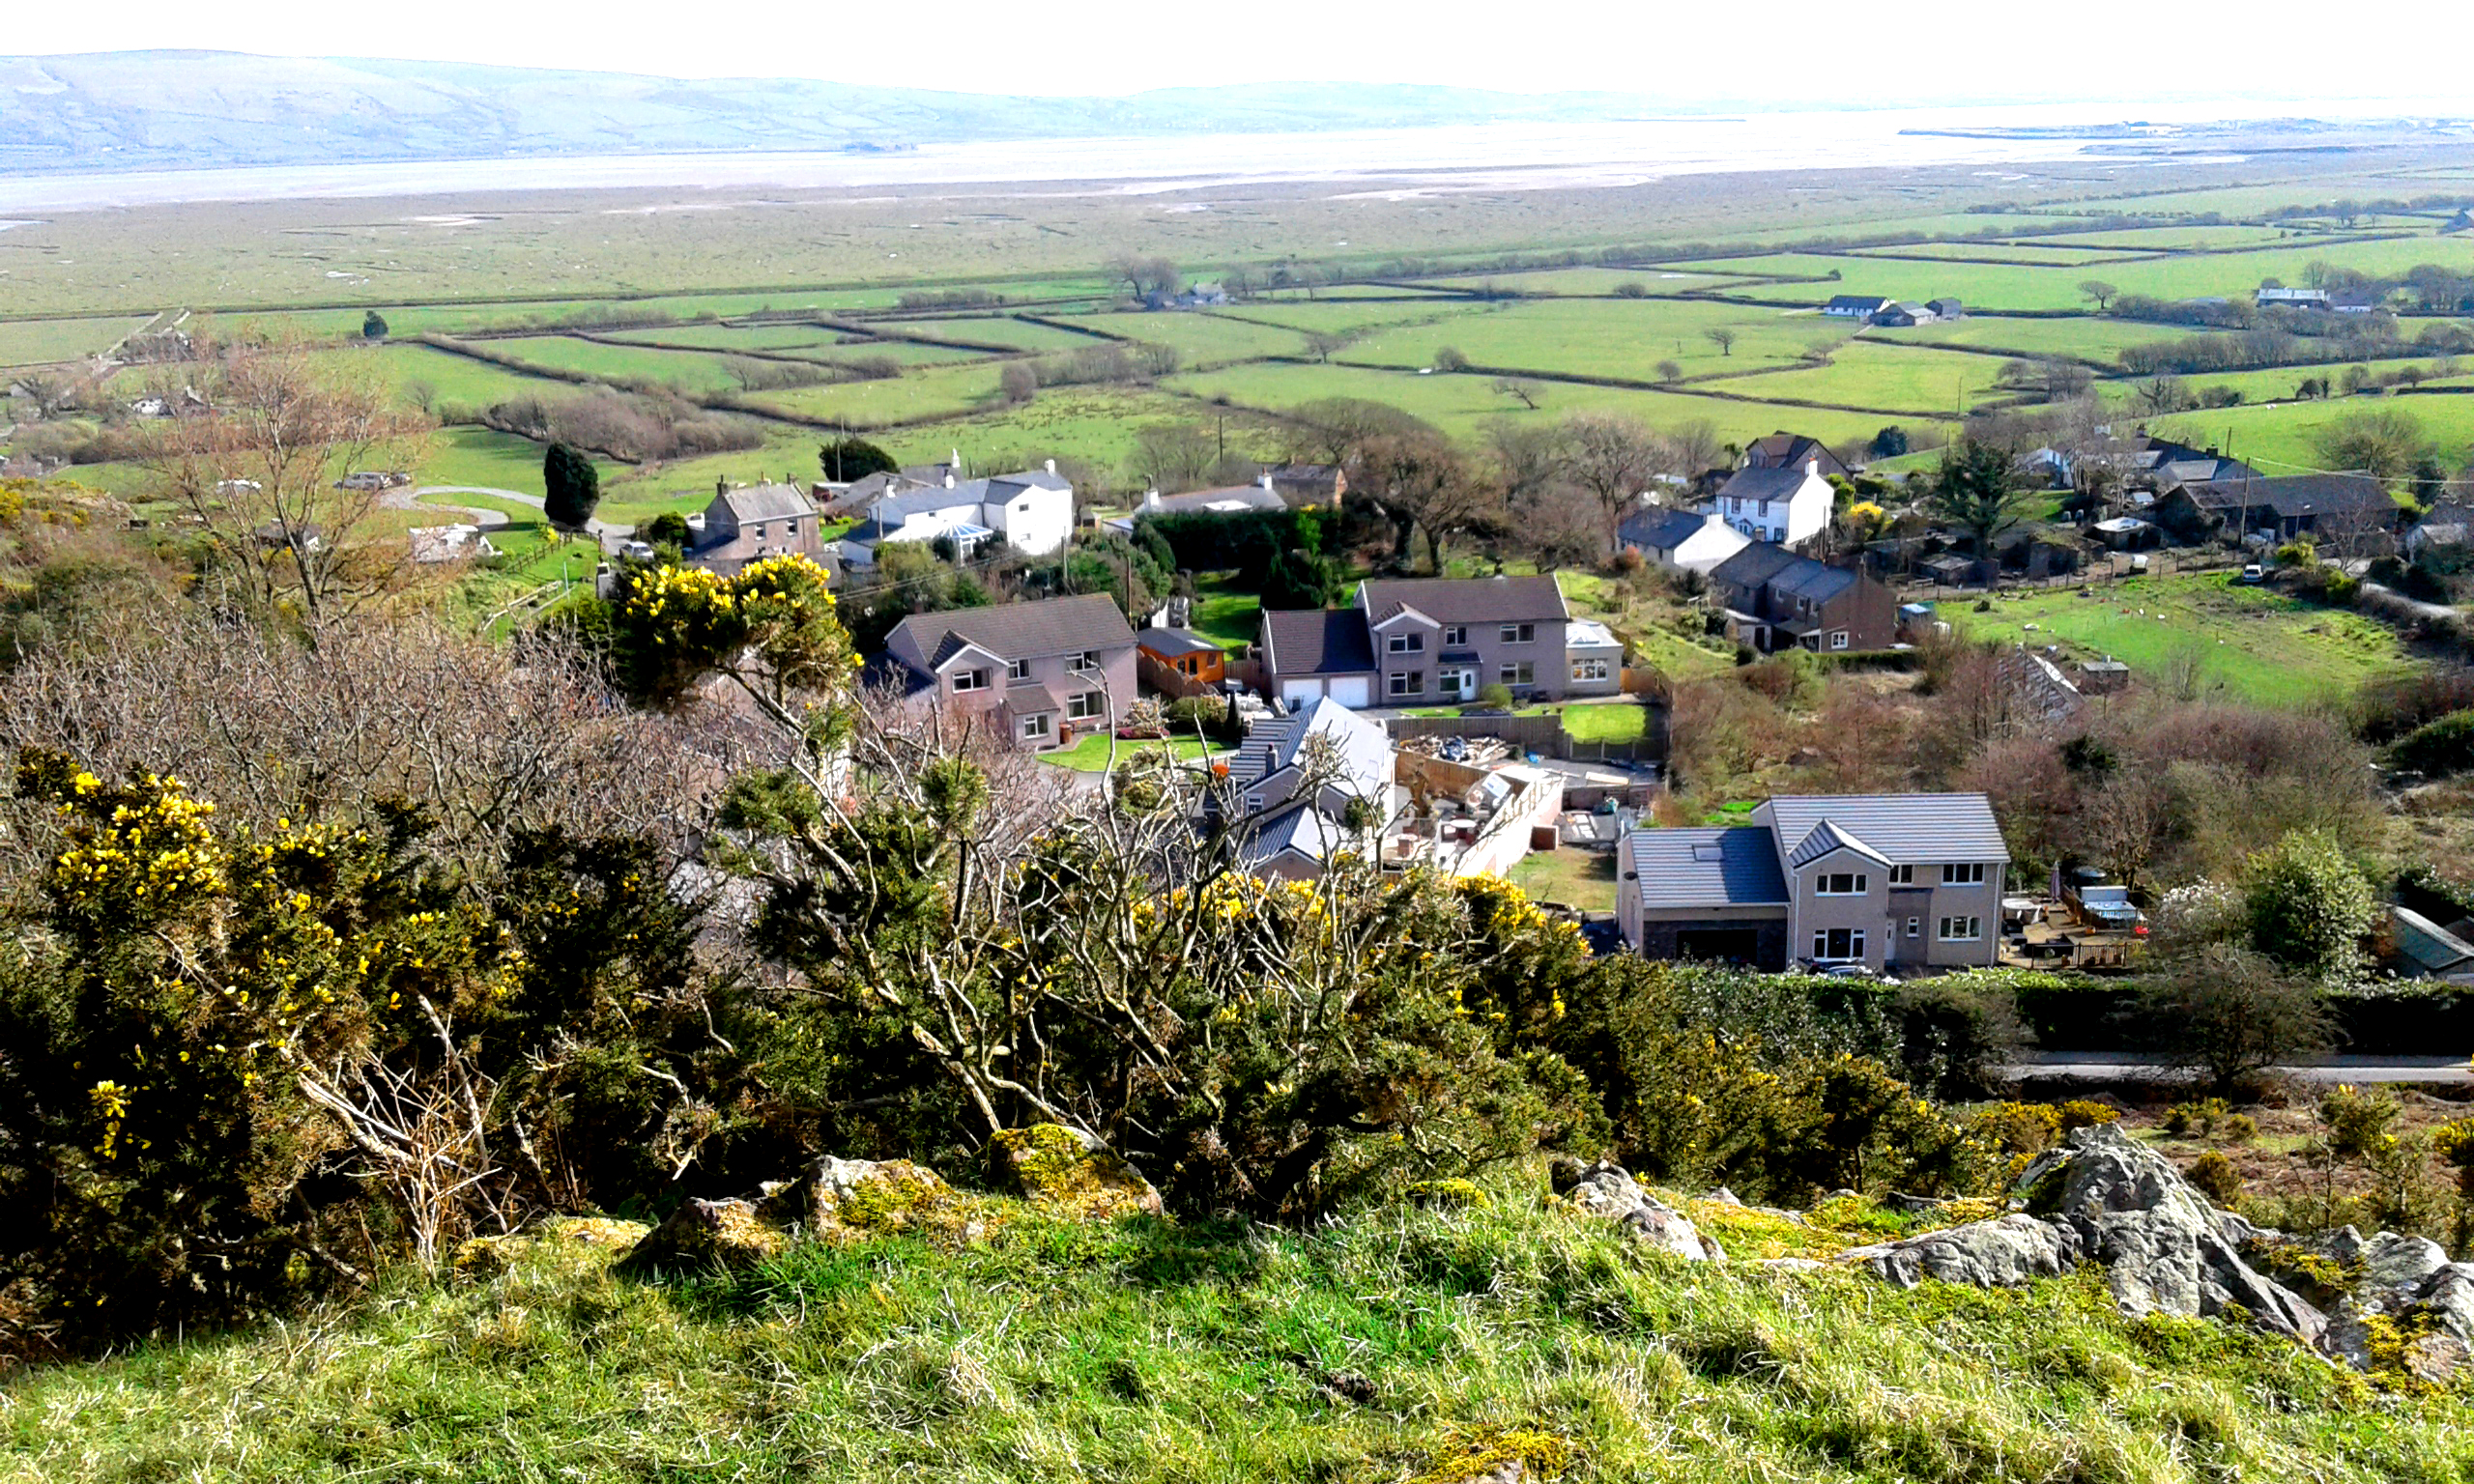 Looking down on the village of The Hill with th eDuddon Estuary in the distance